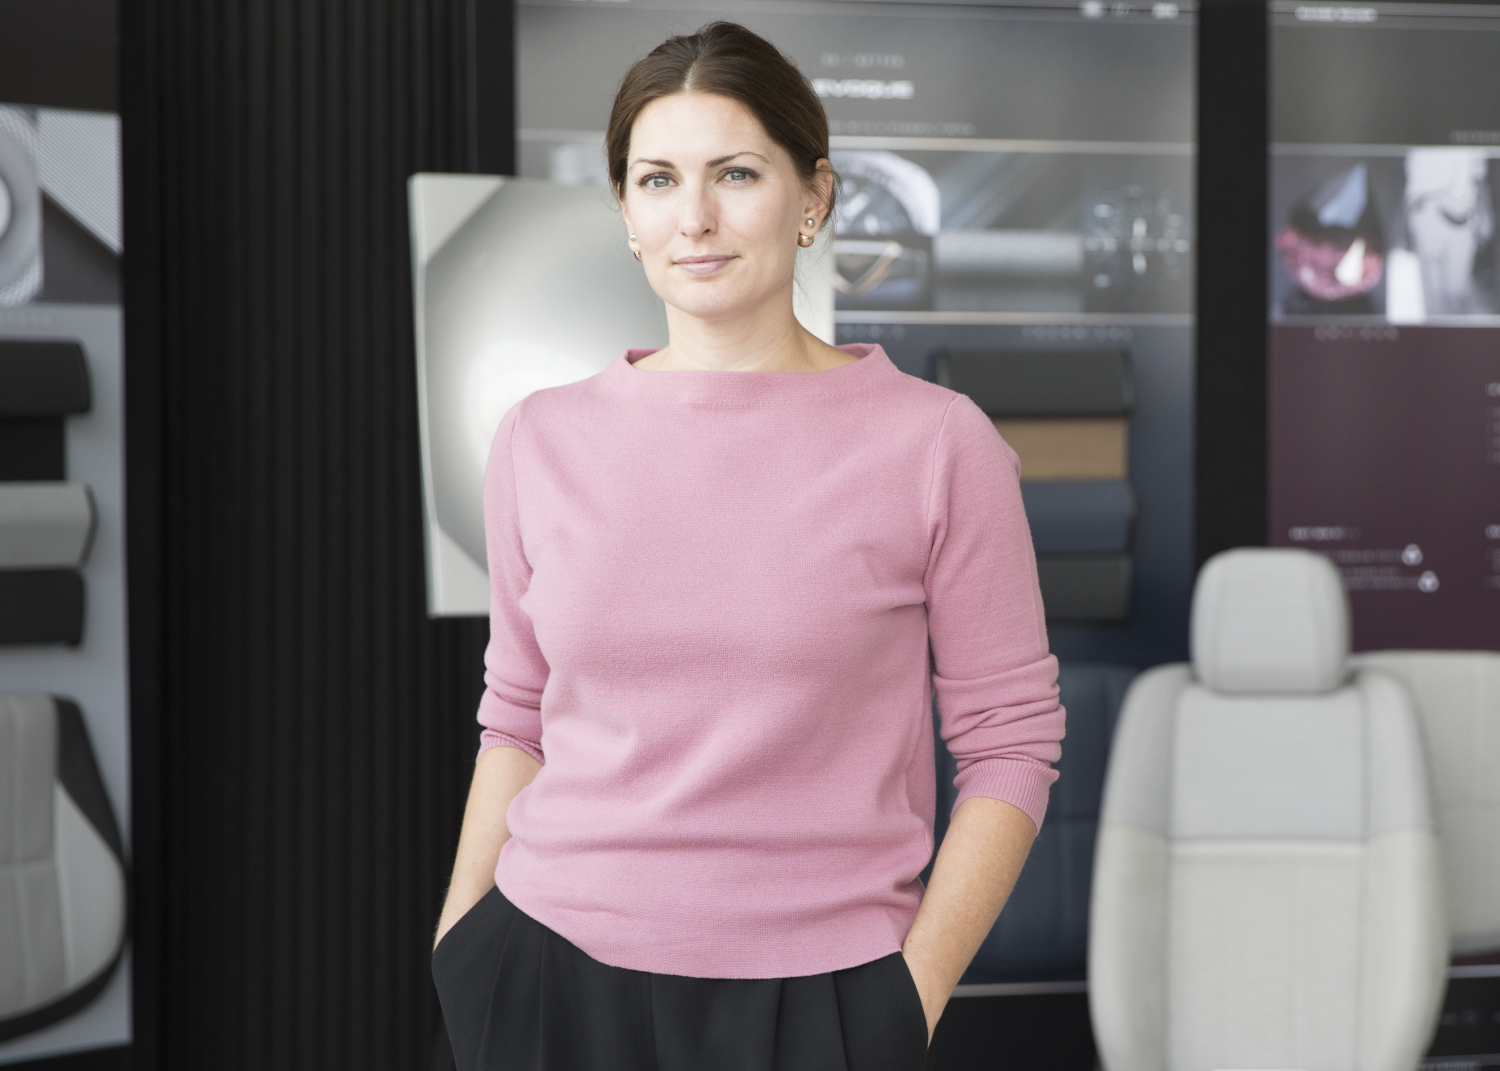 Amy Frascella, Land Rover's Director of Colour and Materials